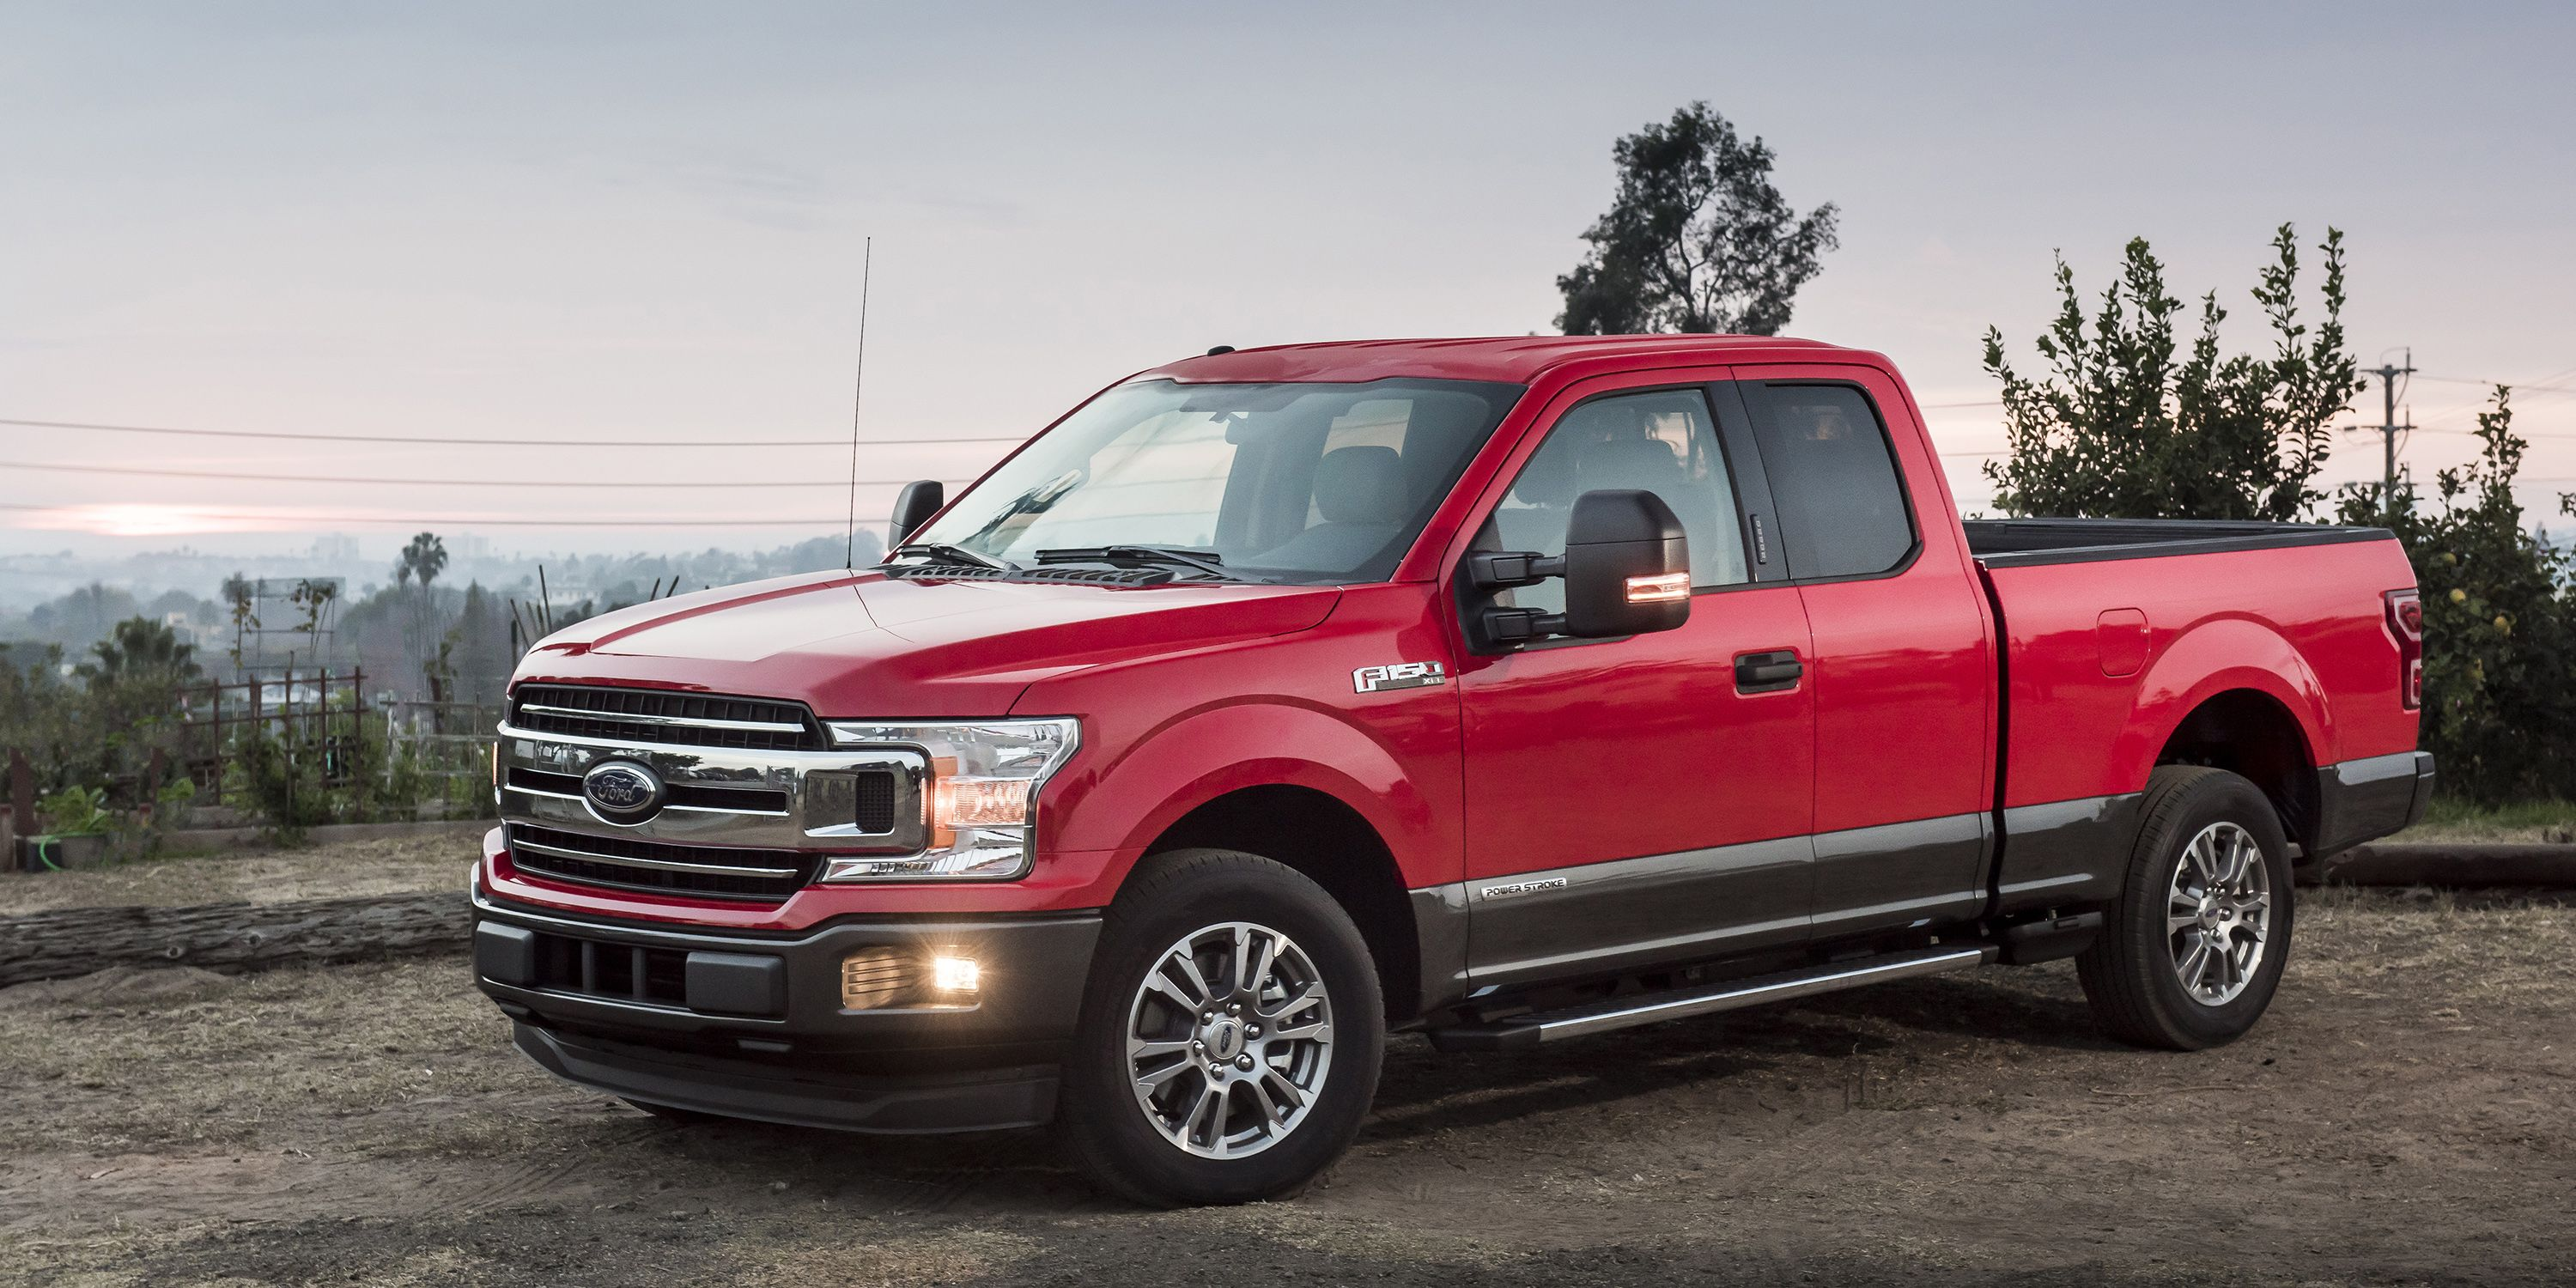 2018 ford f 150 diesel specs price release date mpg details on the new f 150